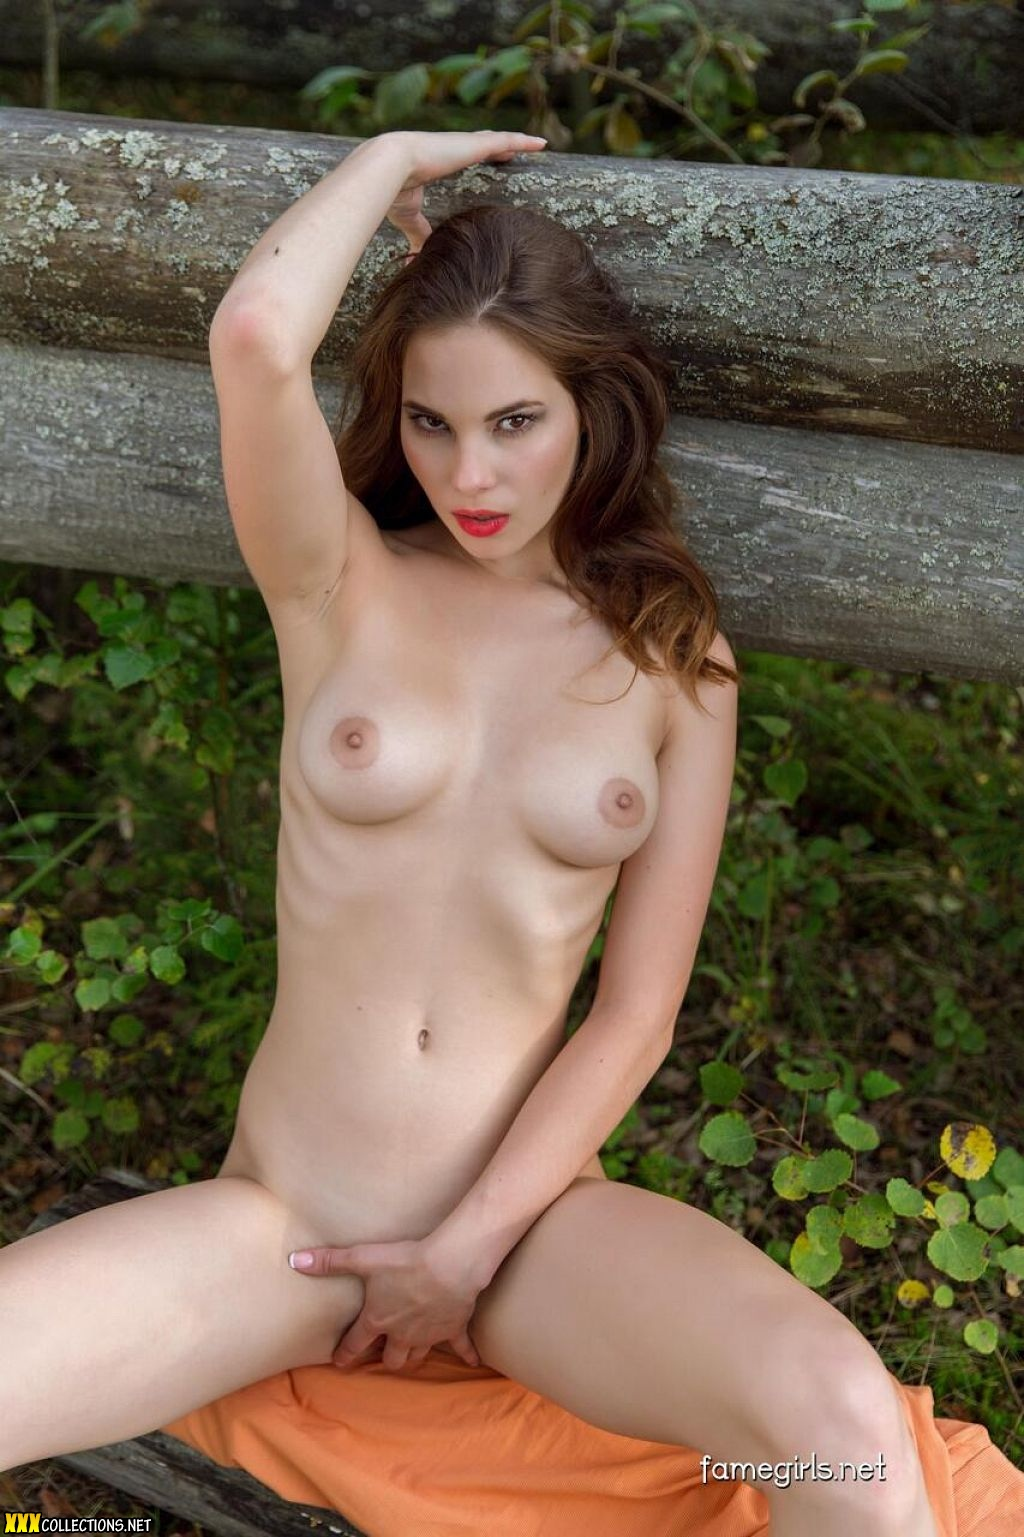 fame girls model naked